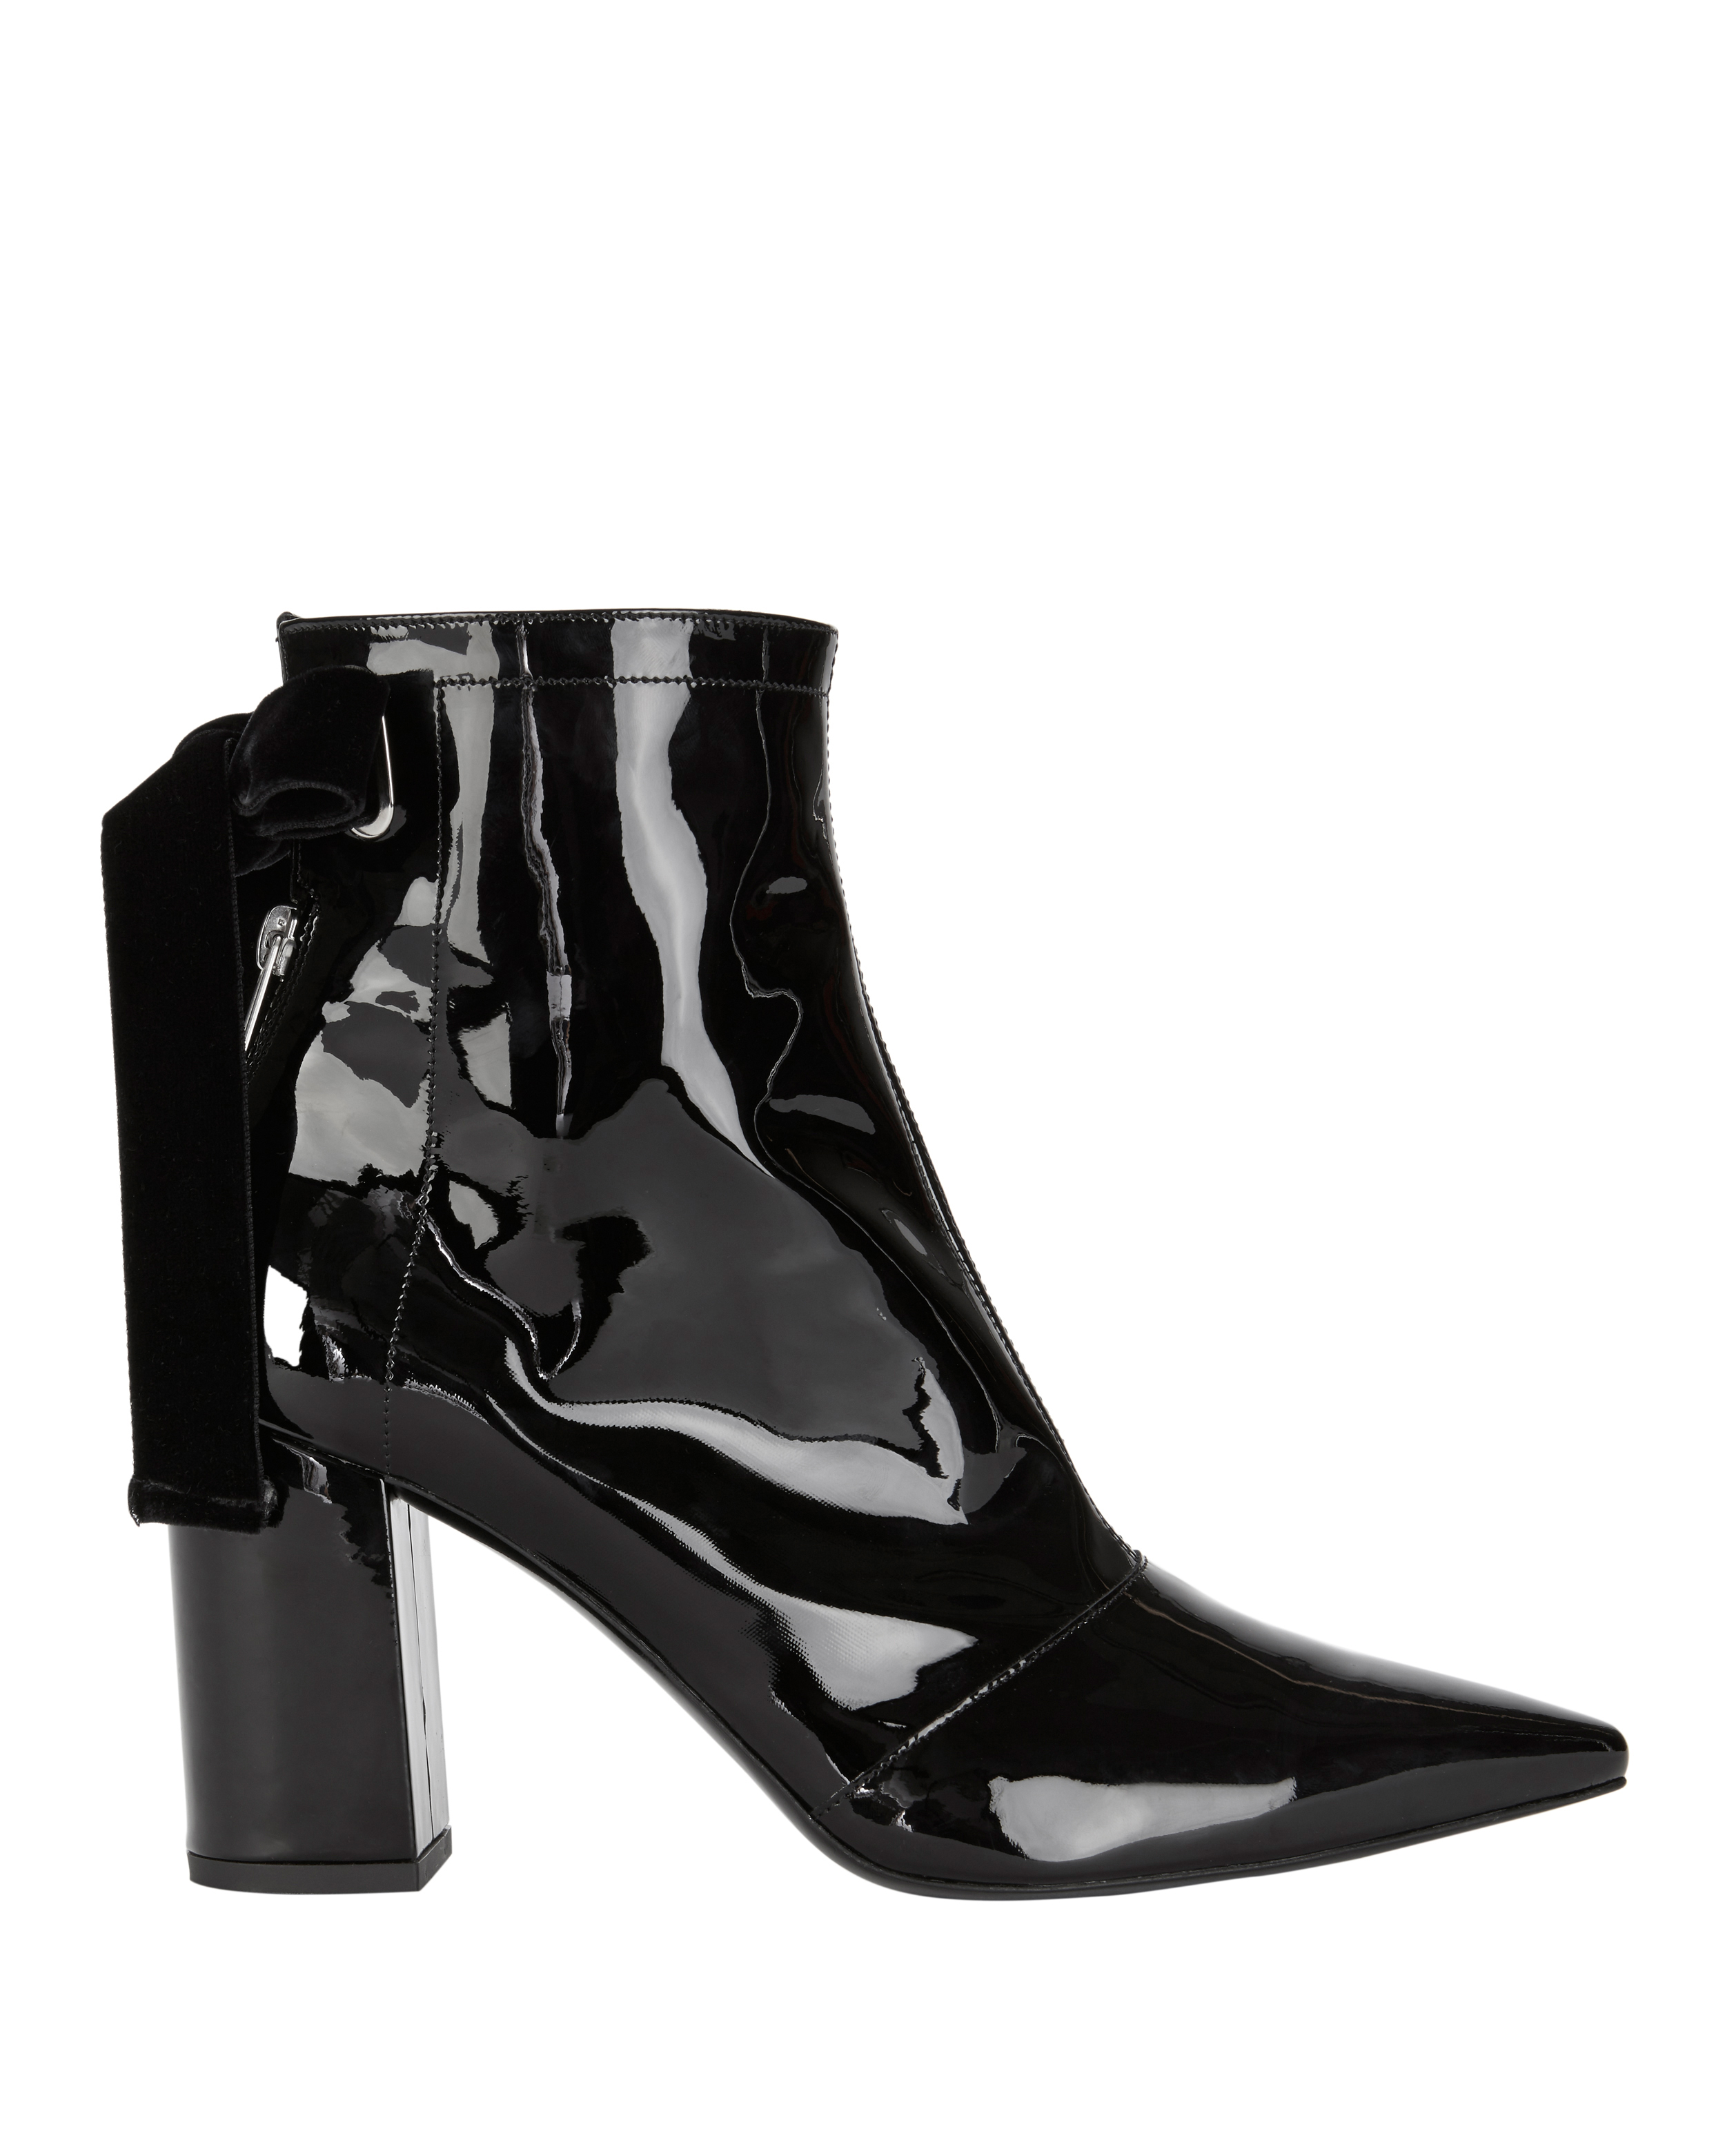 Robert Clergerie X Self Portrait Karli Patent Lace Up Booties by Robert Clergerie